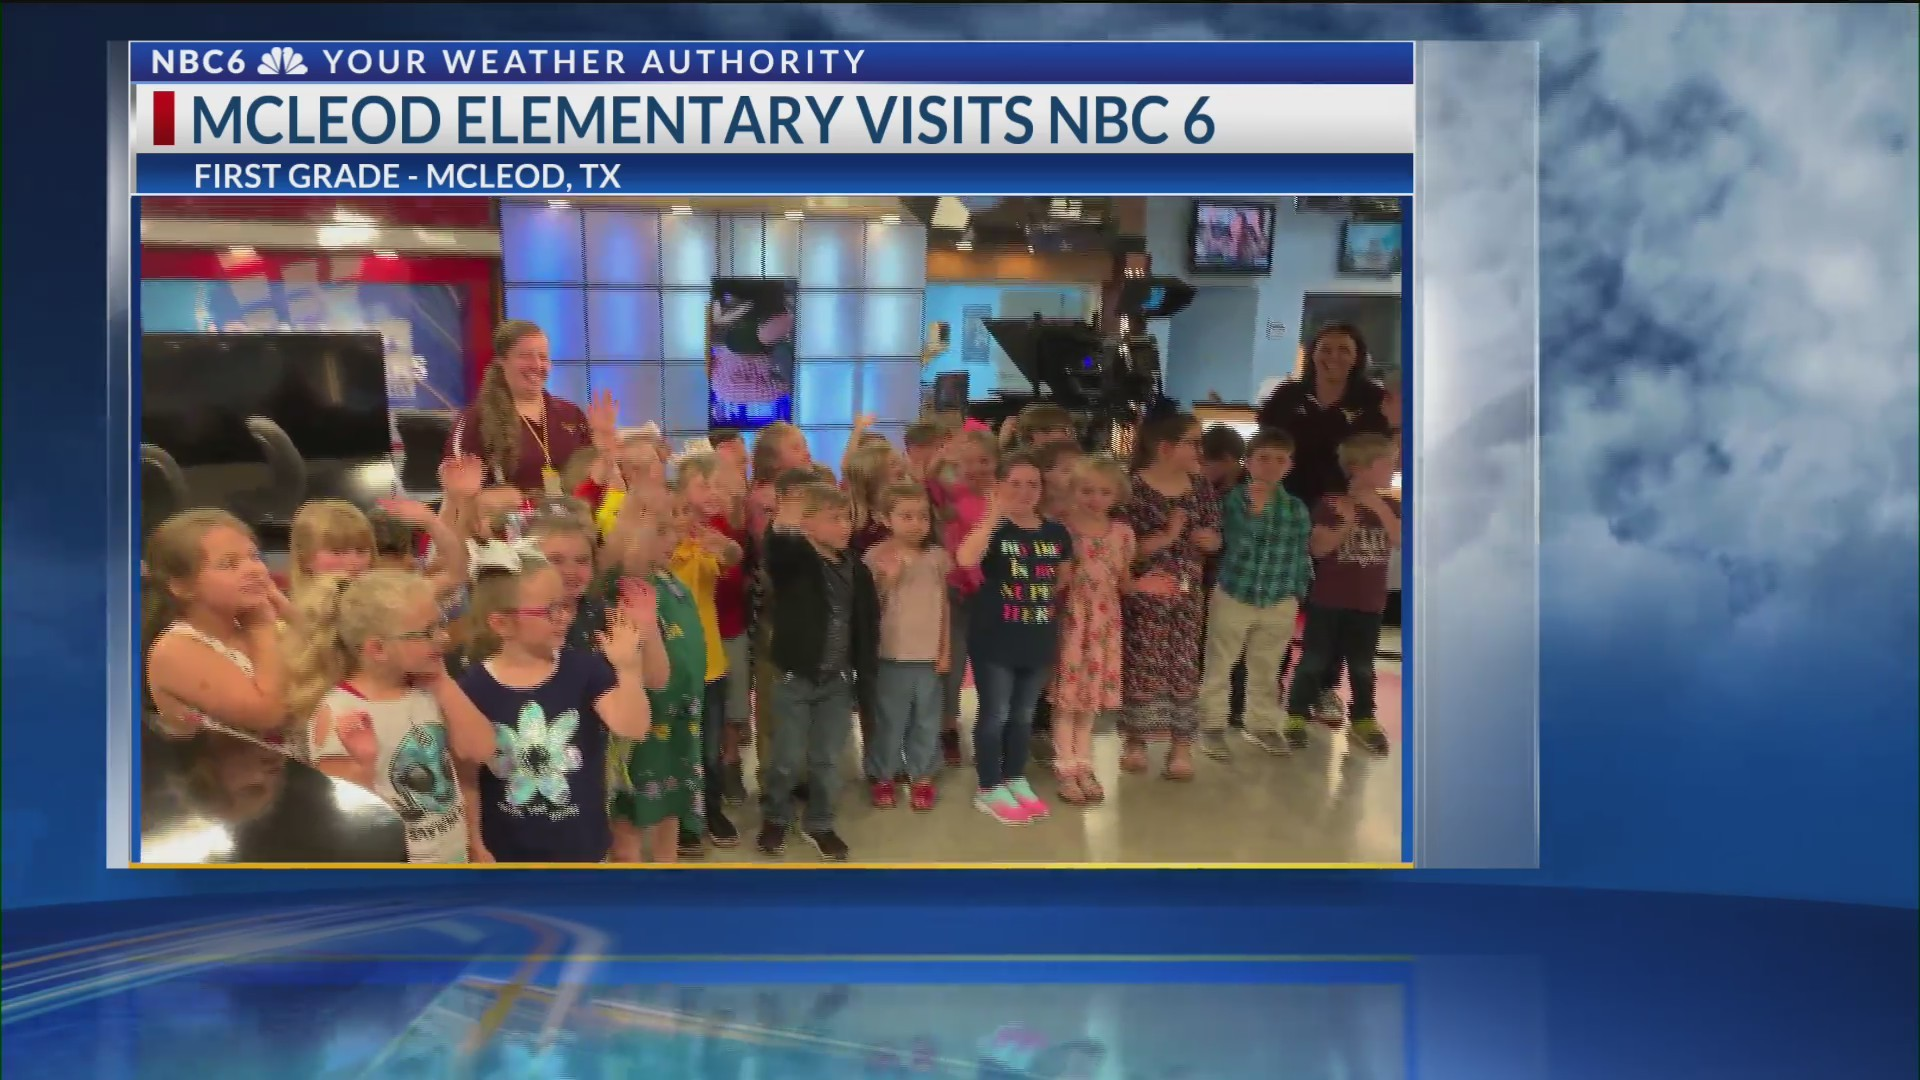 McLeod Elementary visits NBC 6